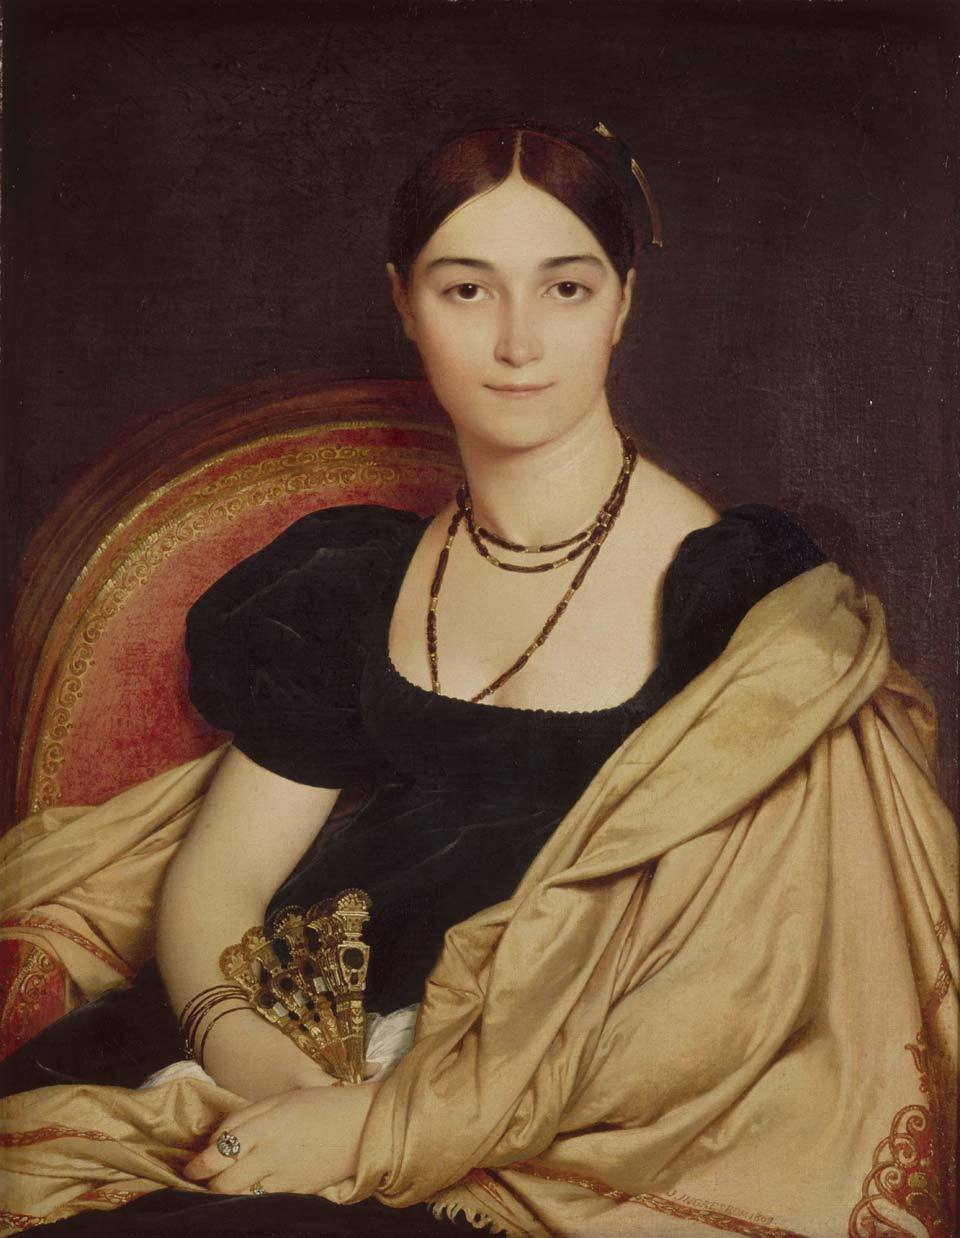 Portrait of Madame Duvaucey by Jean Auguste Dominique Ingres, 1807. Musée Condé, Chantilly. Photo by Getty